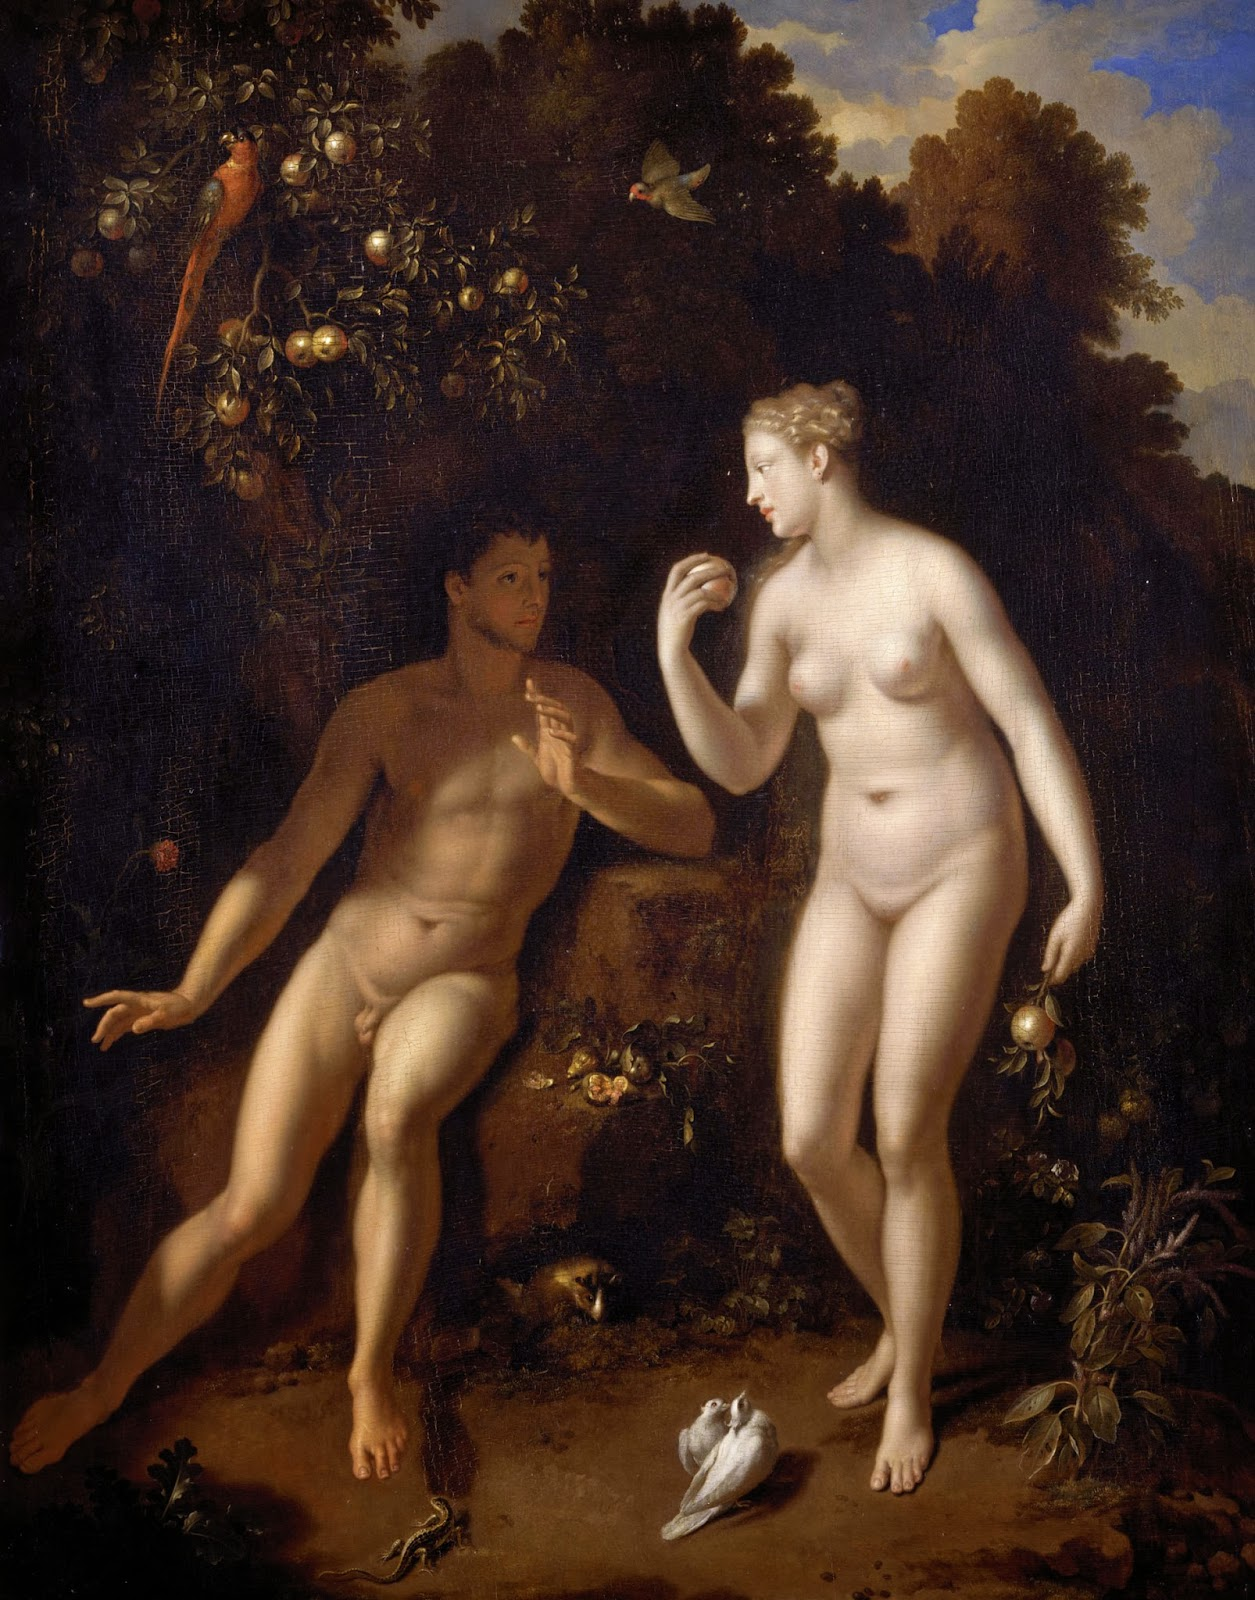 Naked dating show Adam and Eve to be shown in UK